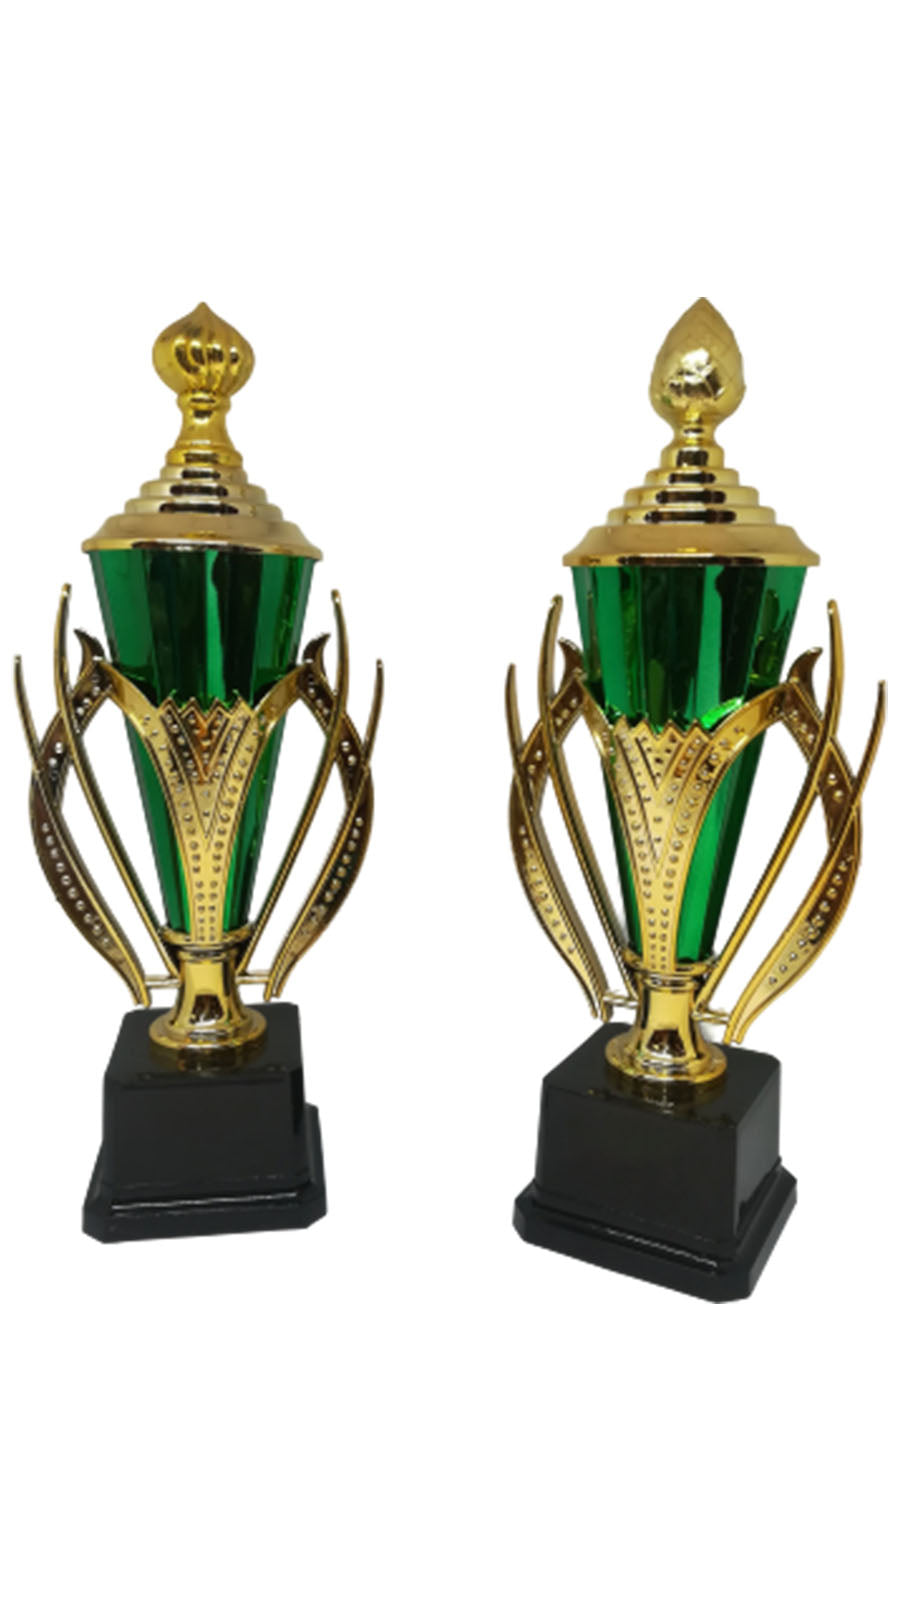 S05 - Plastic Cup Trophy Gold & Green